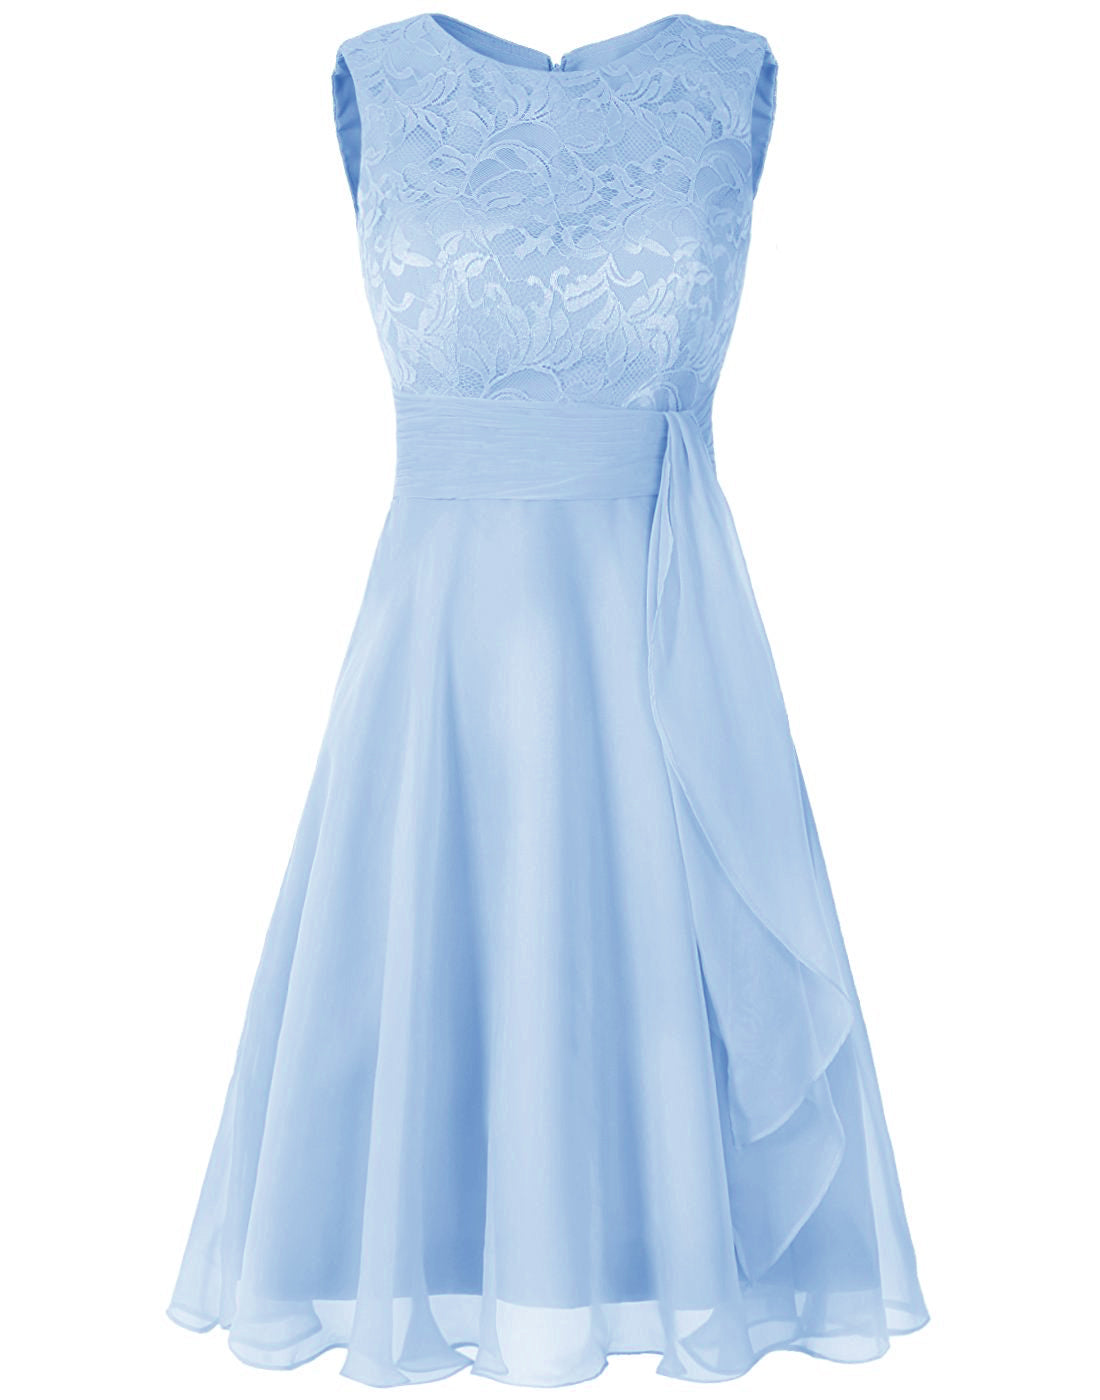 eb2d2c8400d6 Affordable Blue Navy Bridesmaid Dresses UK Company FREE Delivery